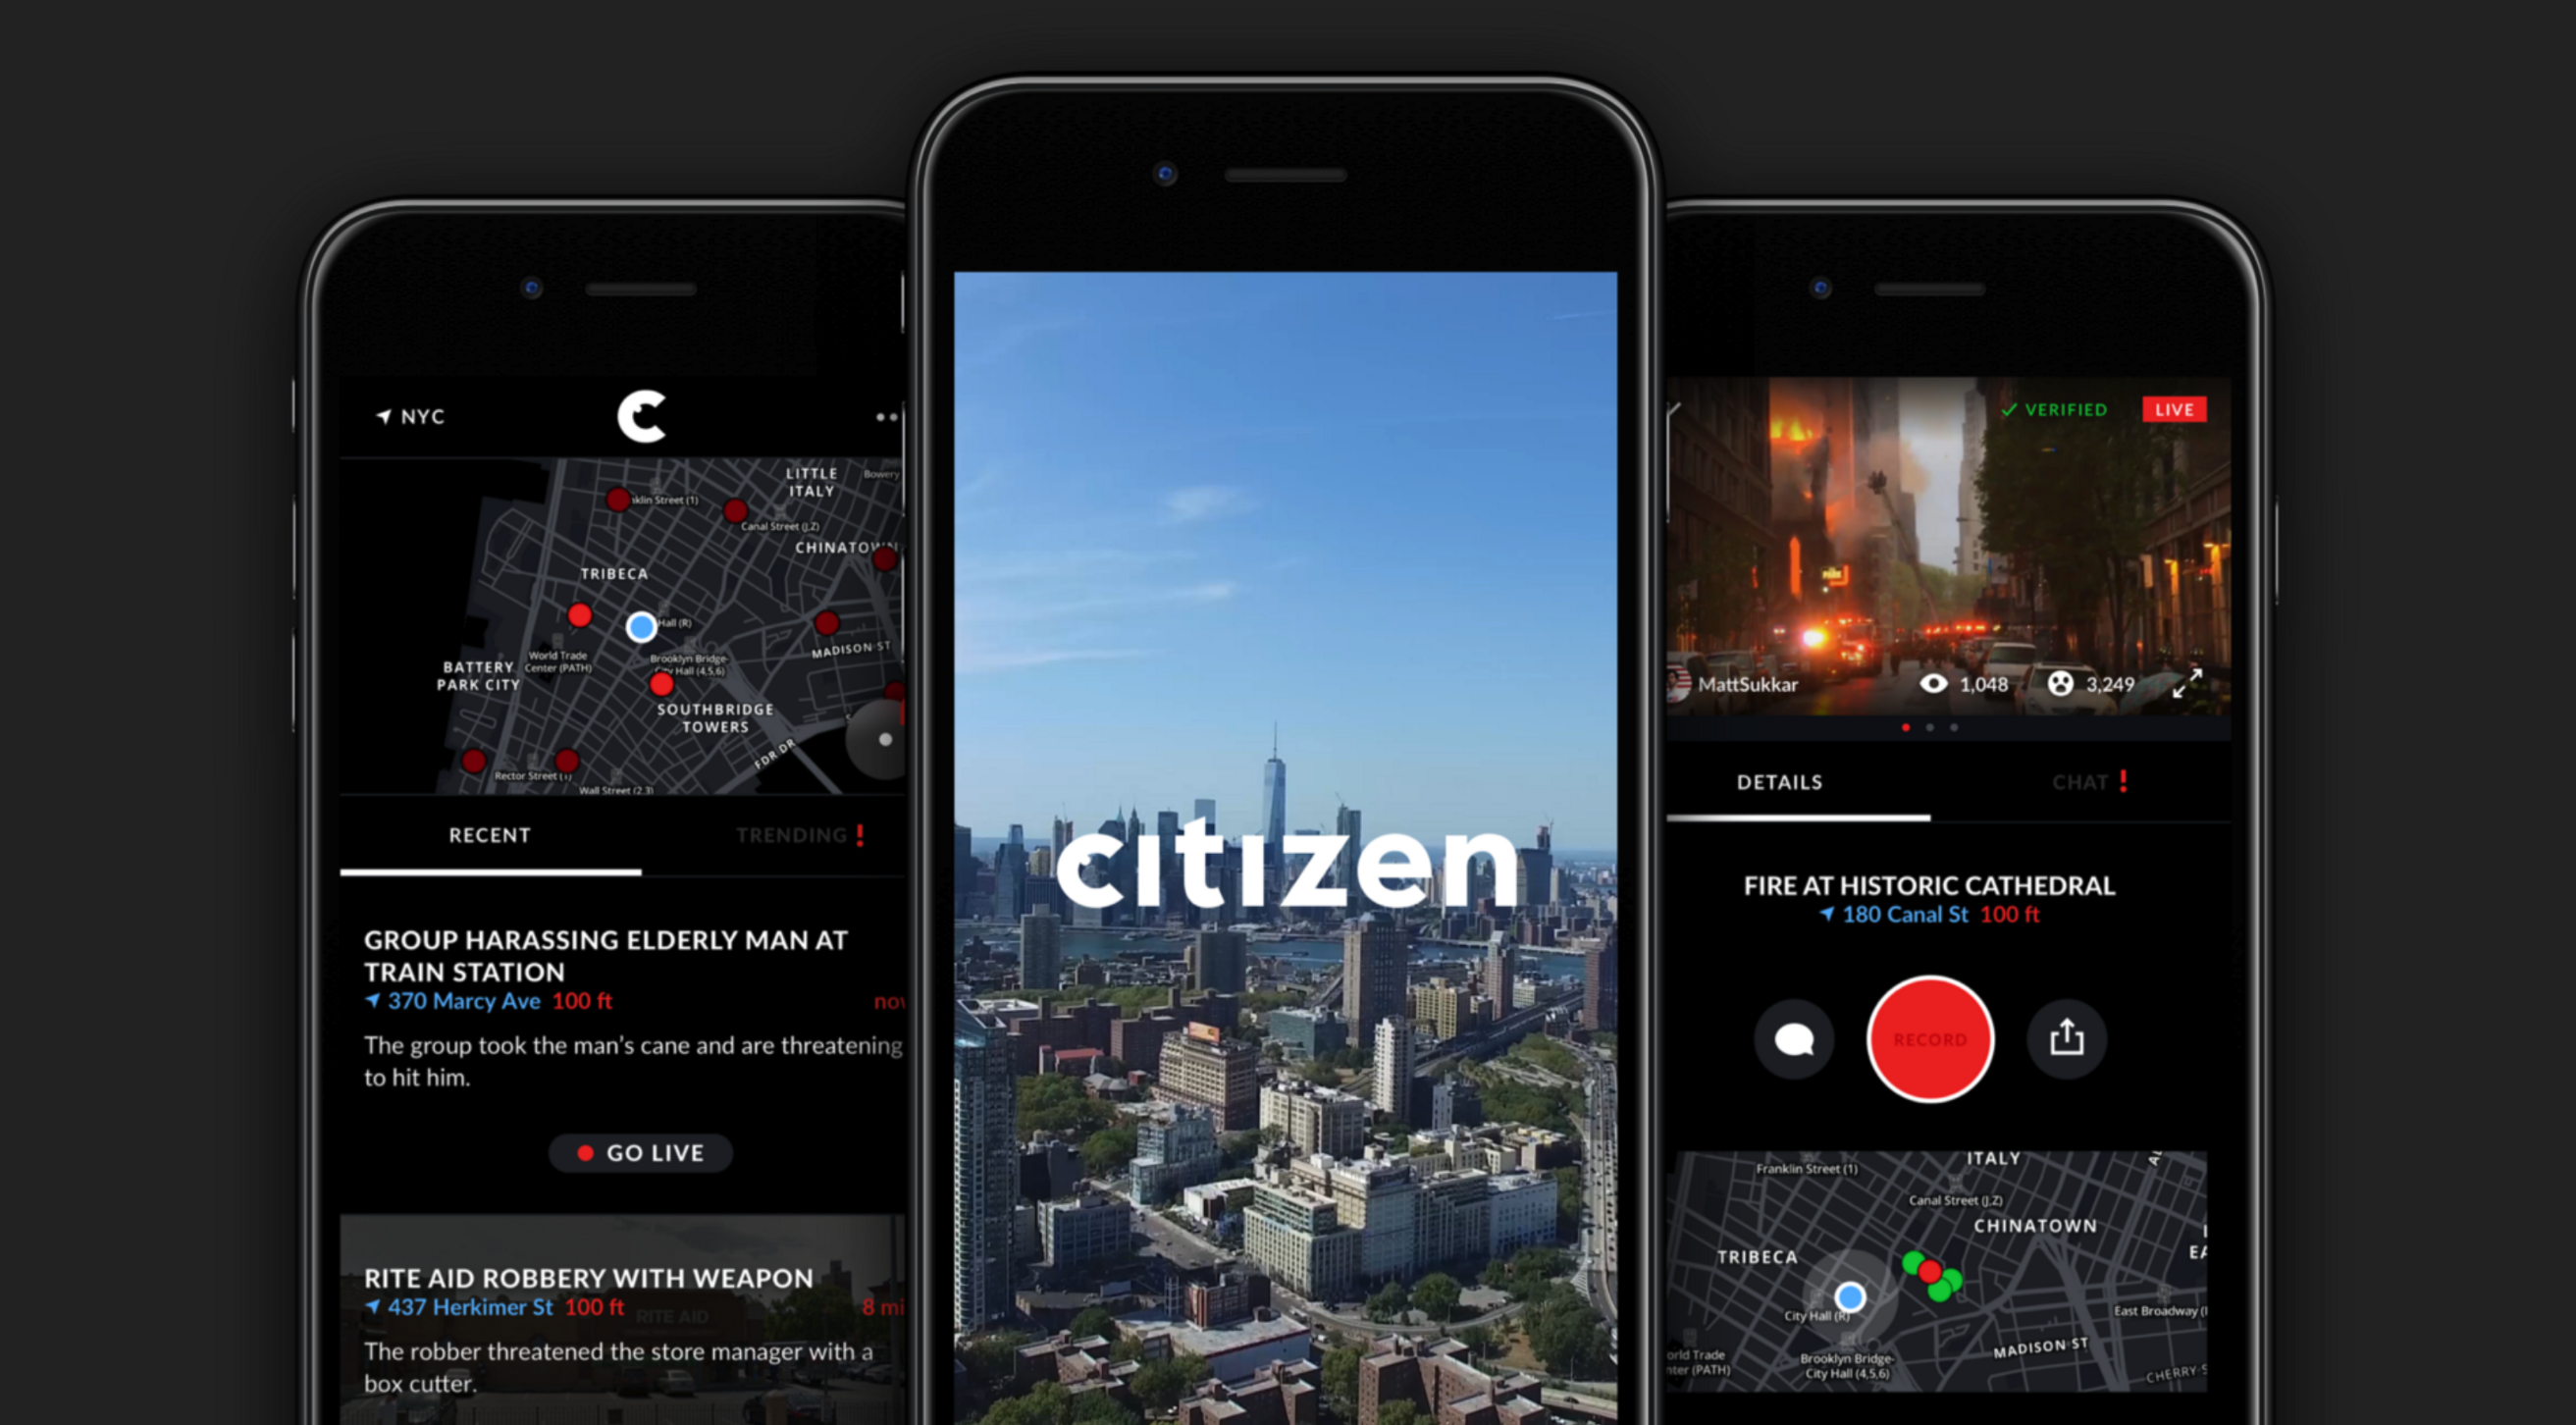 Business Insider Recognizes Citizen as Top App for Your New iPhone